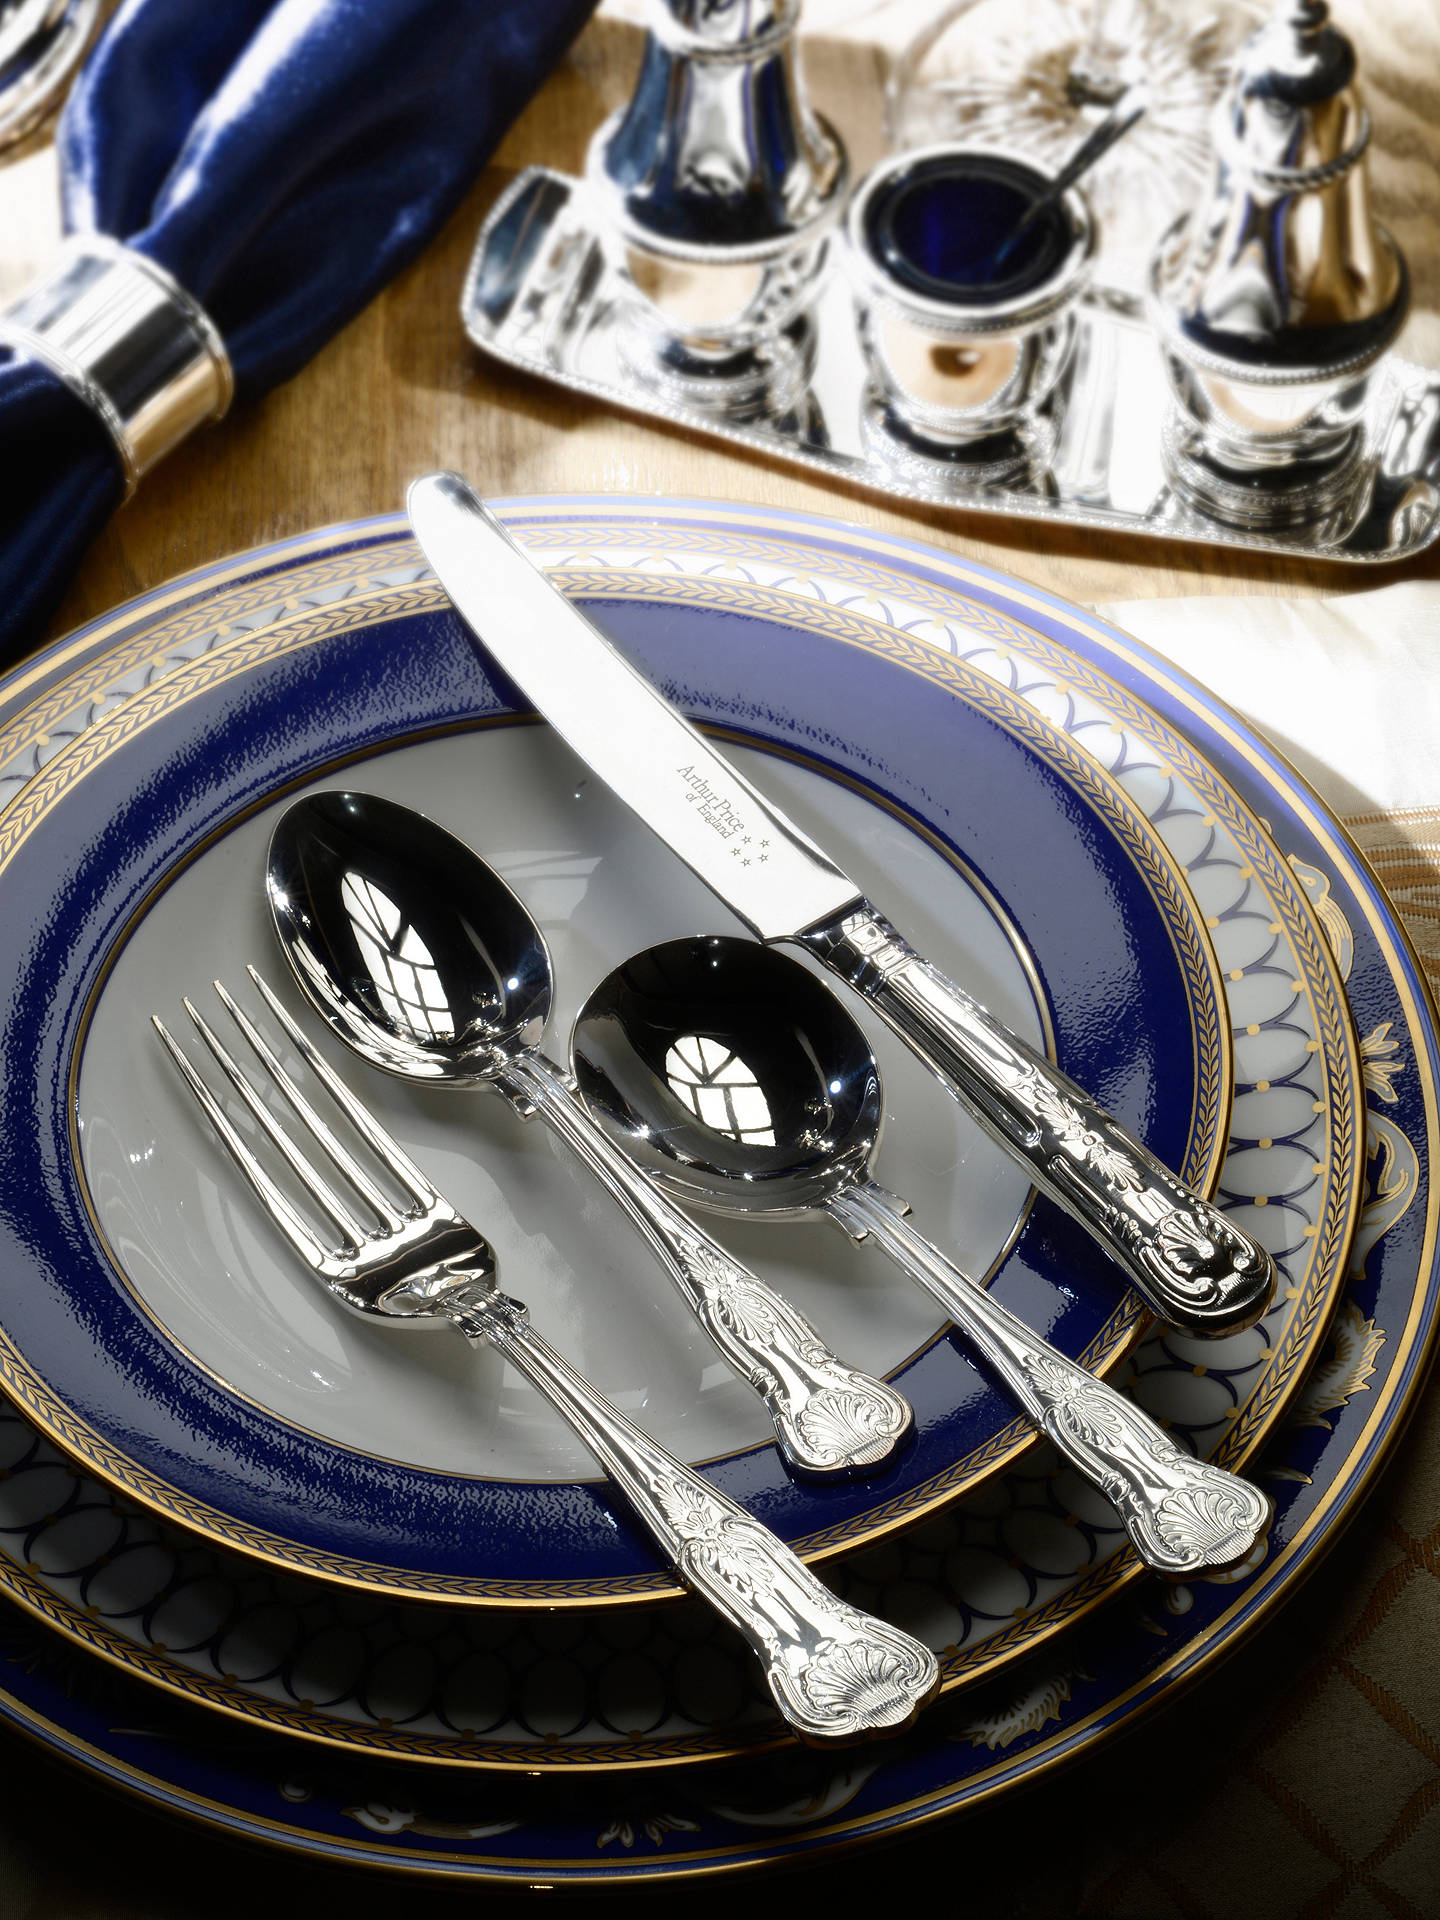 Buy Arthur Price Kings Cutlery Canteen, Silver Plated, 84 Piece Online at johnlewis.com